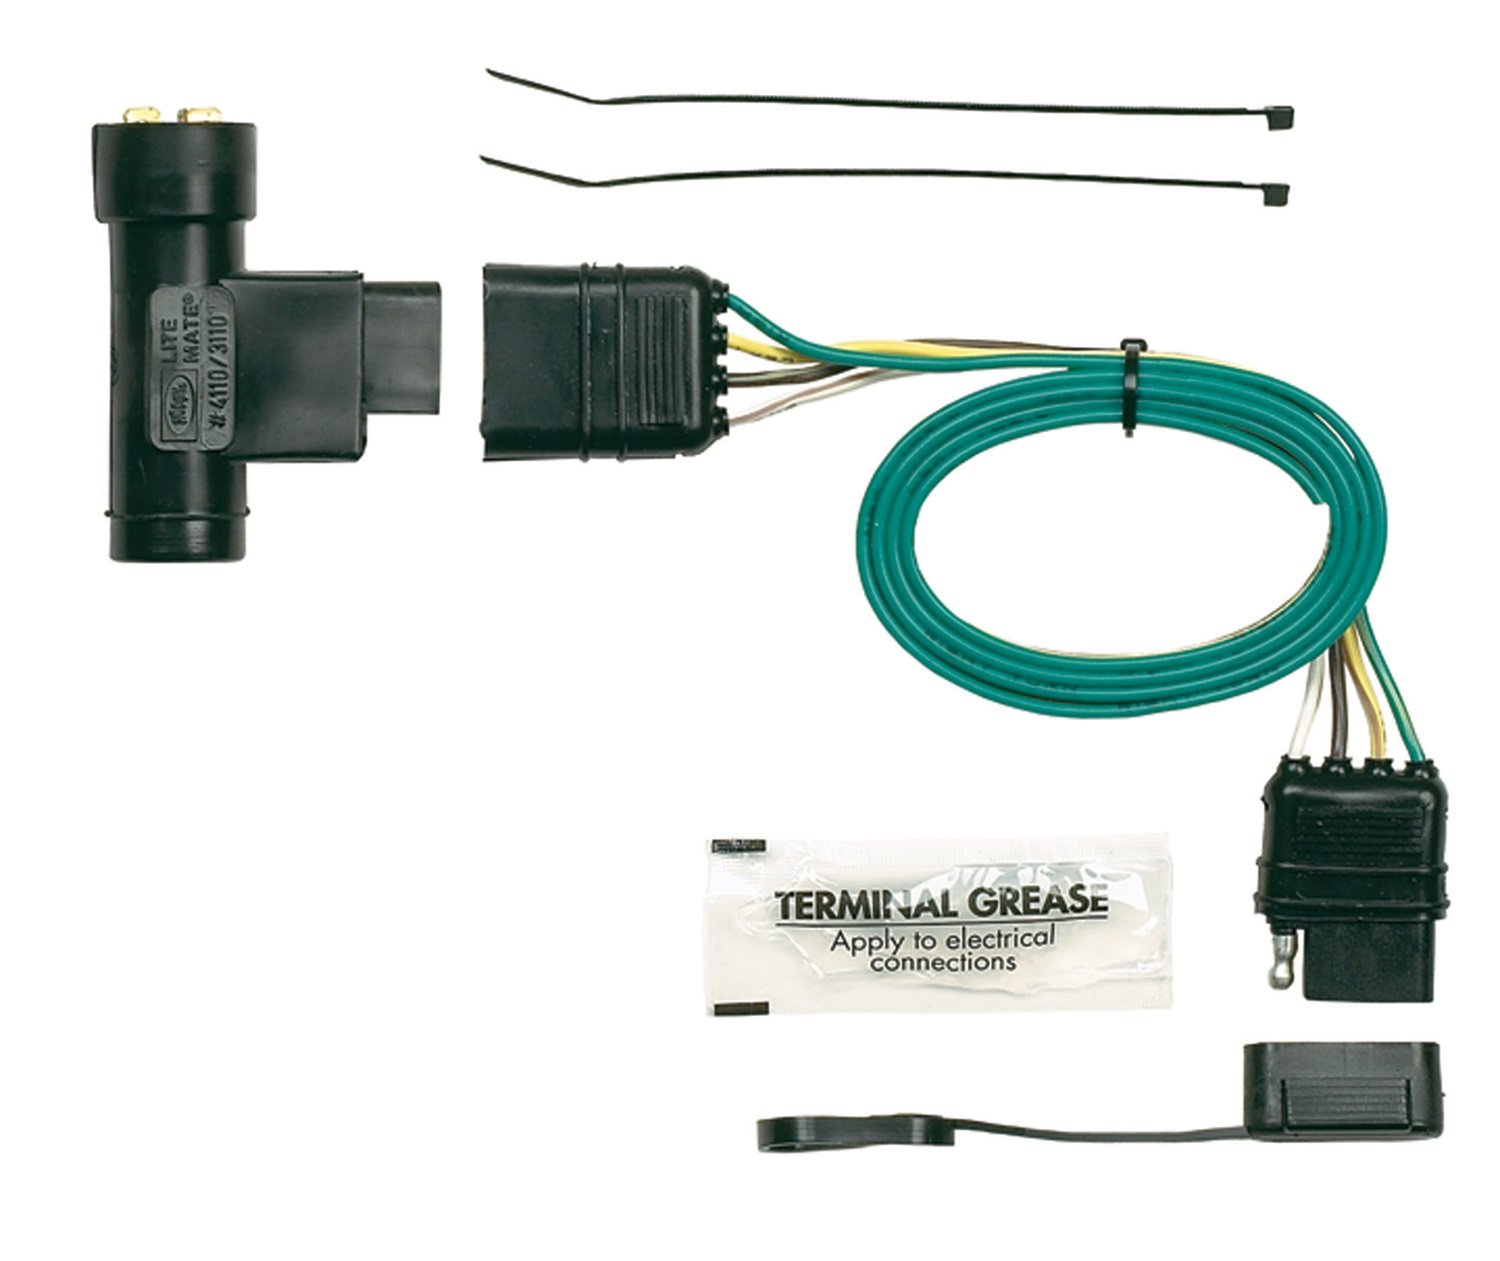 61WwgAY1zlL._SL1500_ amazon com hopkins 41105 plug in simple vehicle wiring kit hopkins towing solutions wiring diagram at eliteediting.co